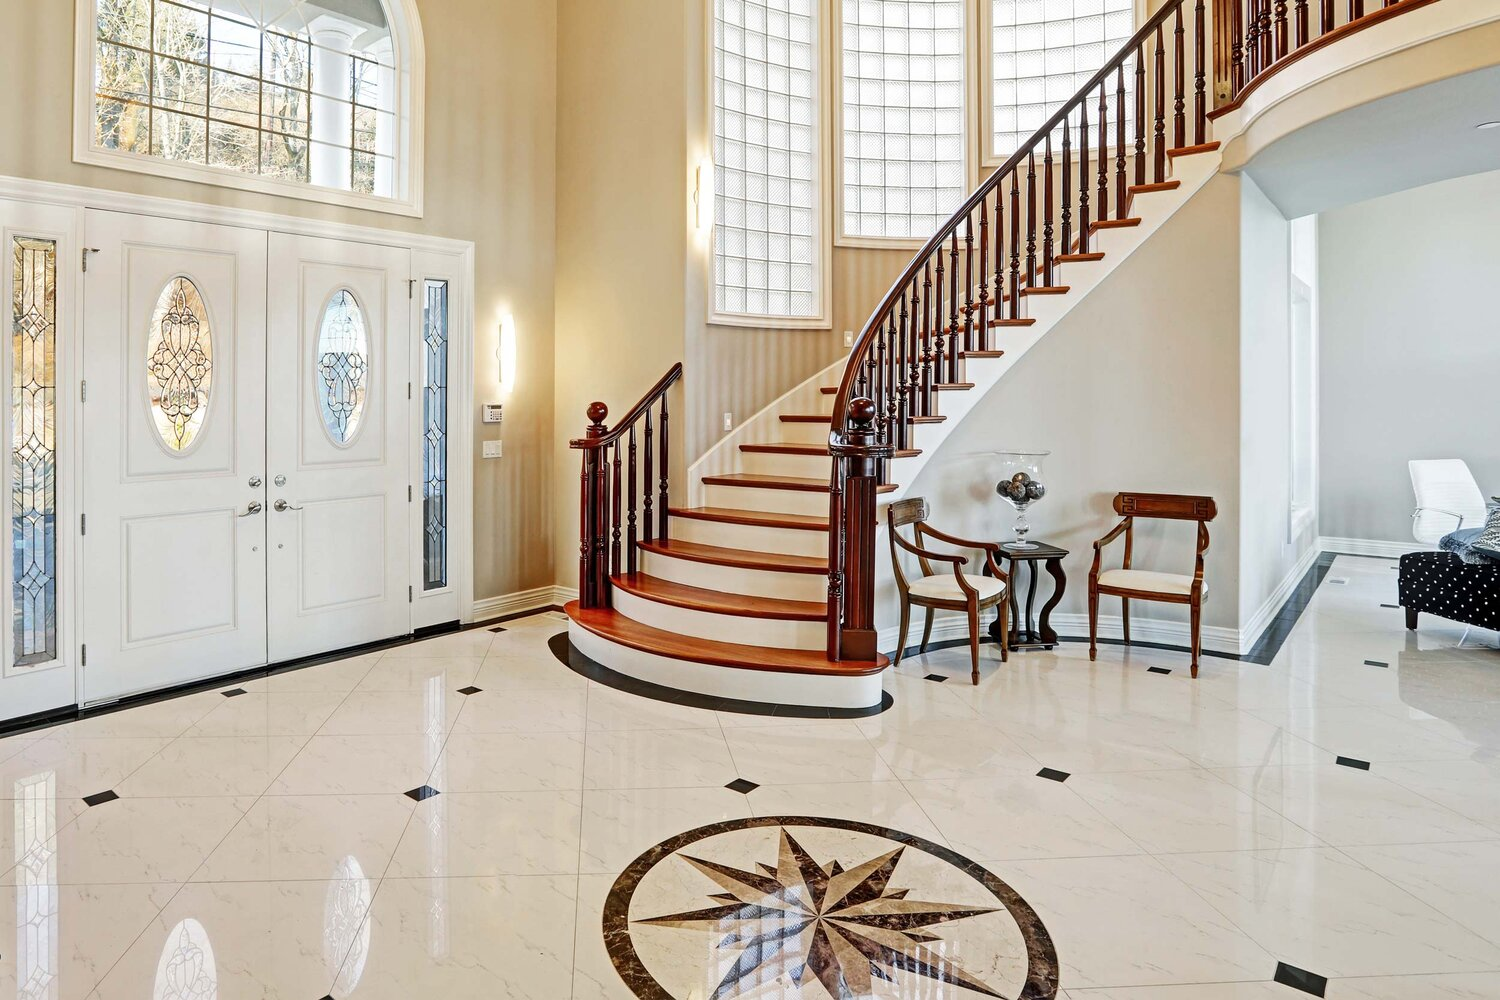 How to select the best Marble, Granite, and Natural Stone provider